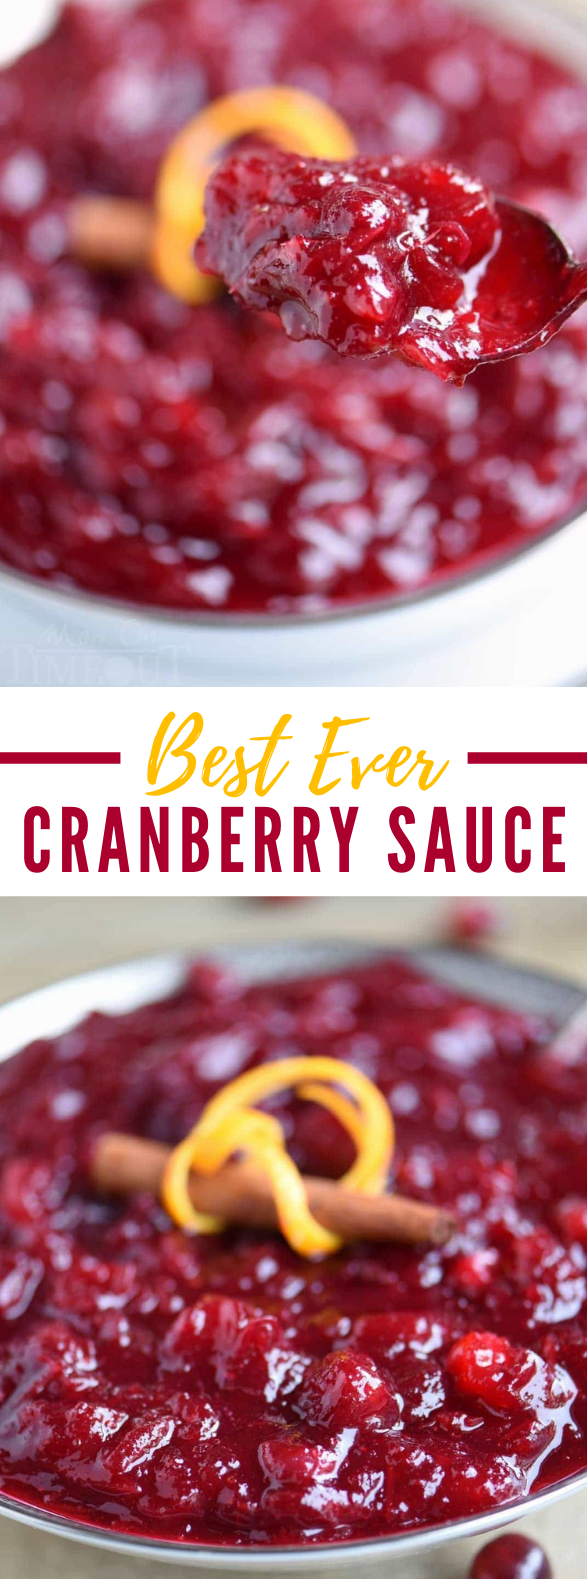 BEST EVER CRANBERRY SAUCE #meals #holidayrecipes